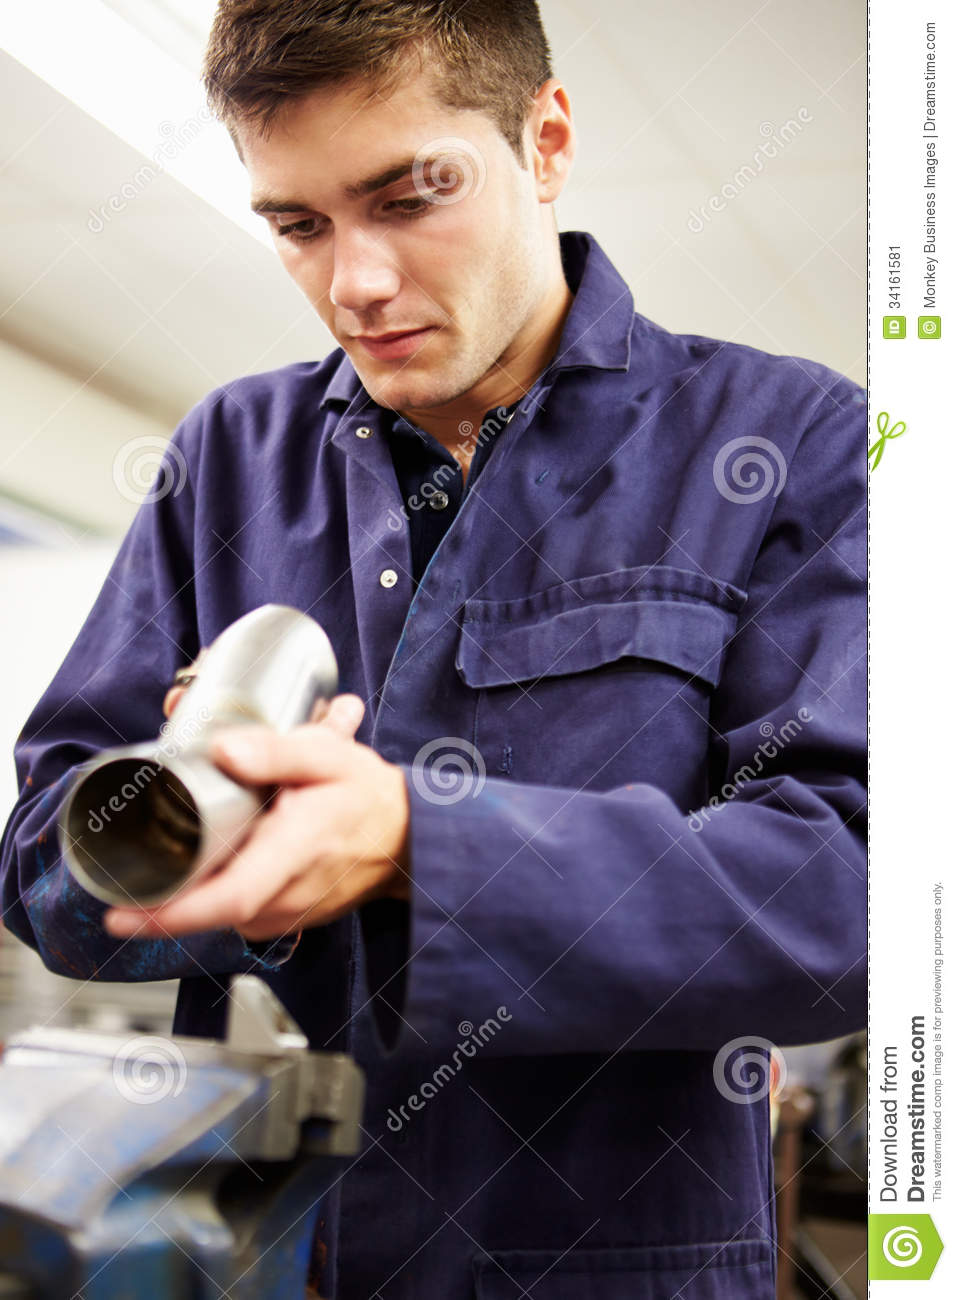 Apprentice Engineer Checking Component On Factory Floor